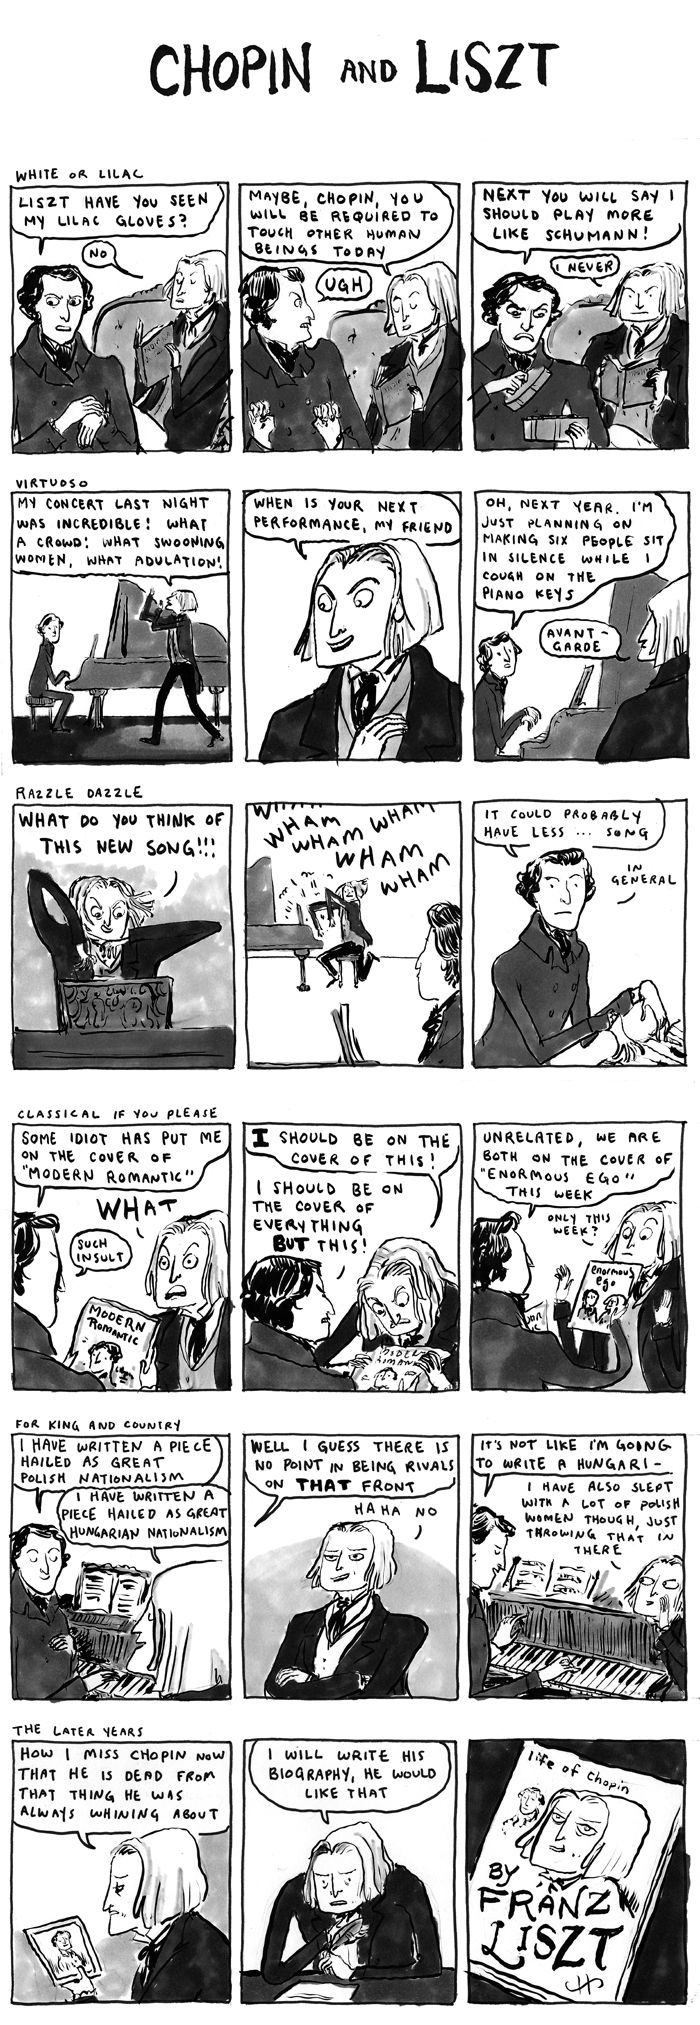 LOL So funny! Only classical pianist will understand the craziness between Chopin and Liszt!